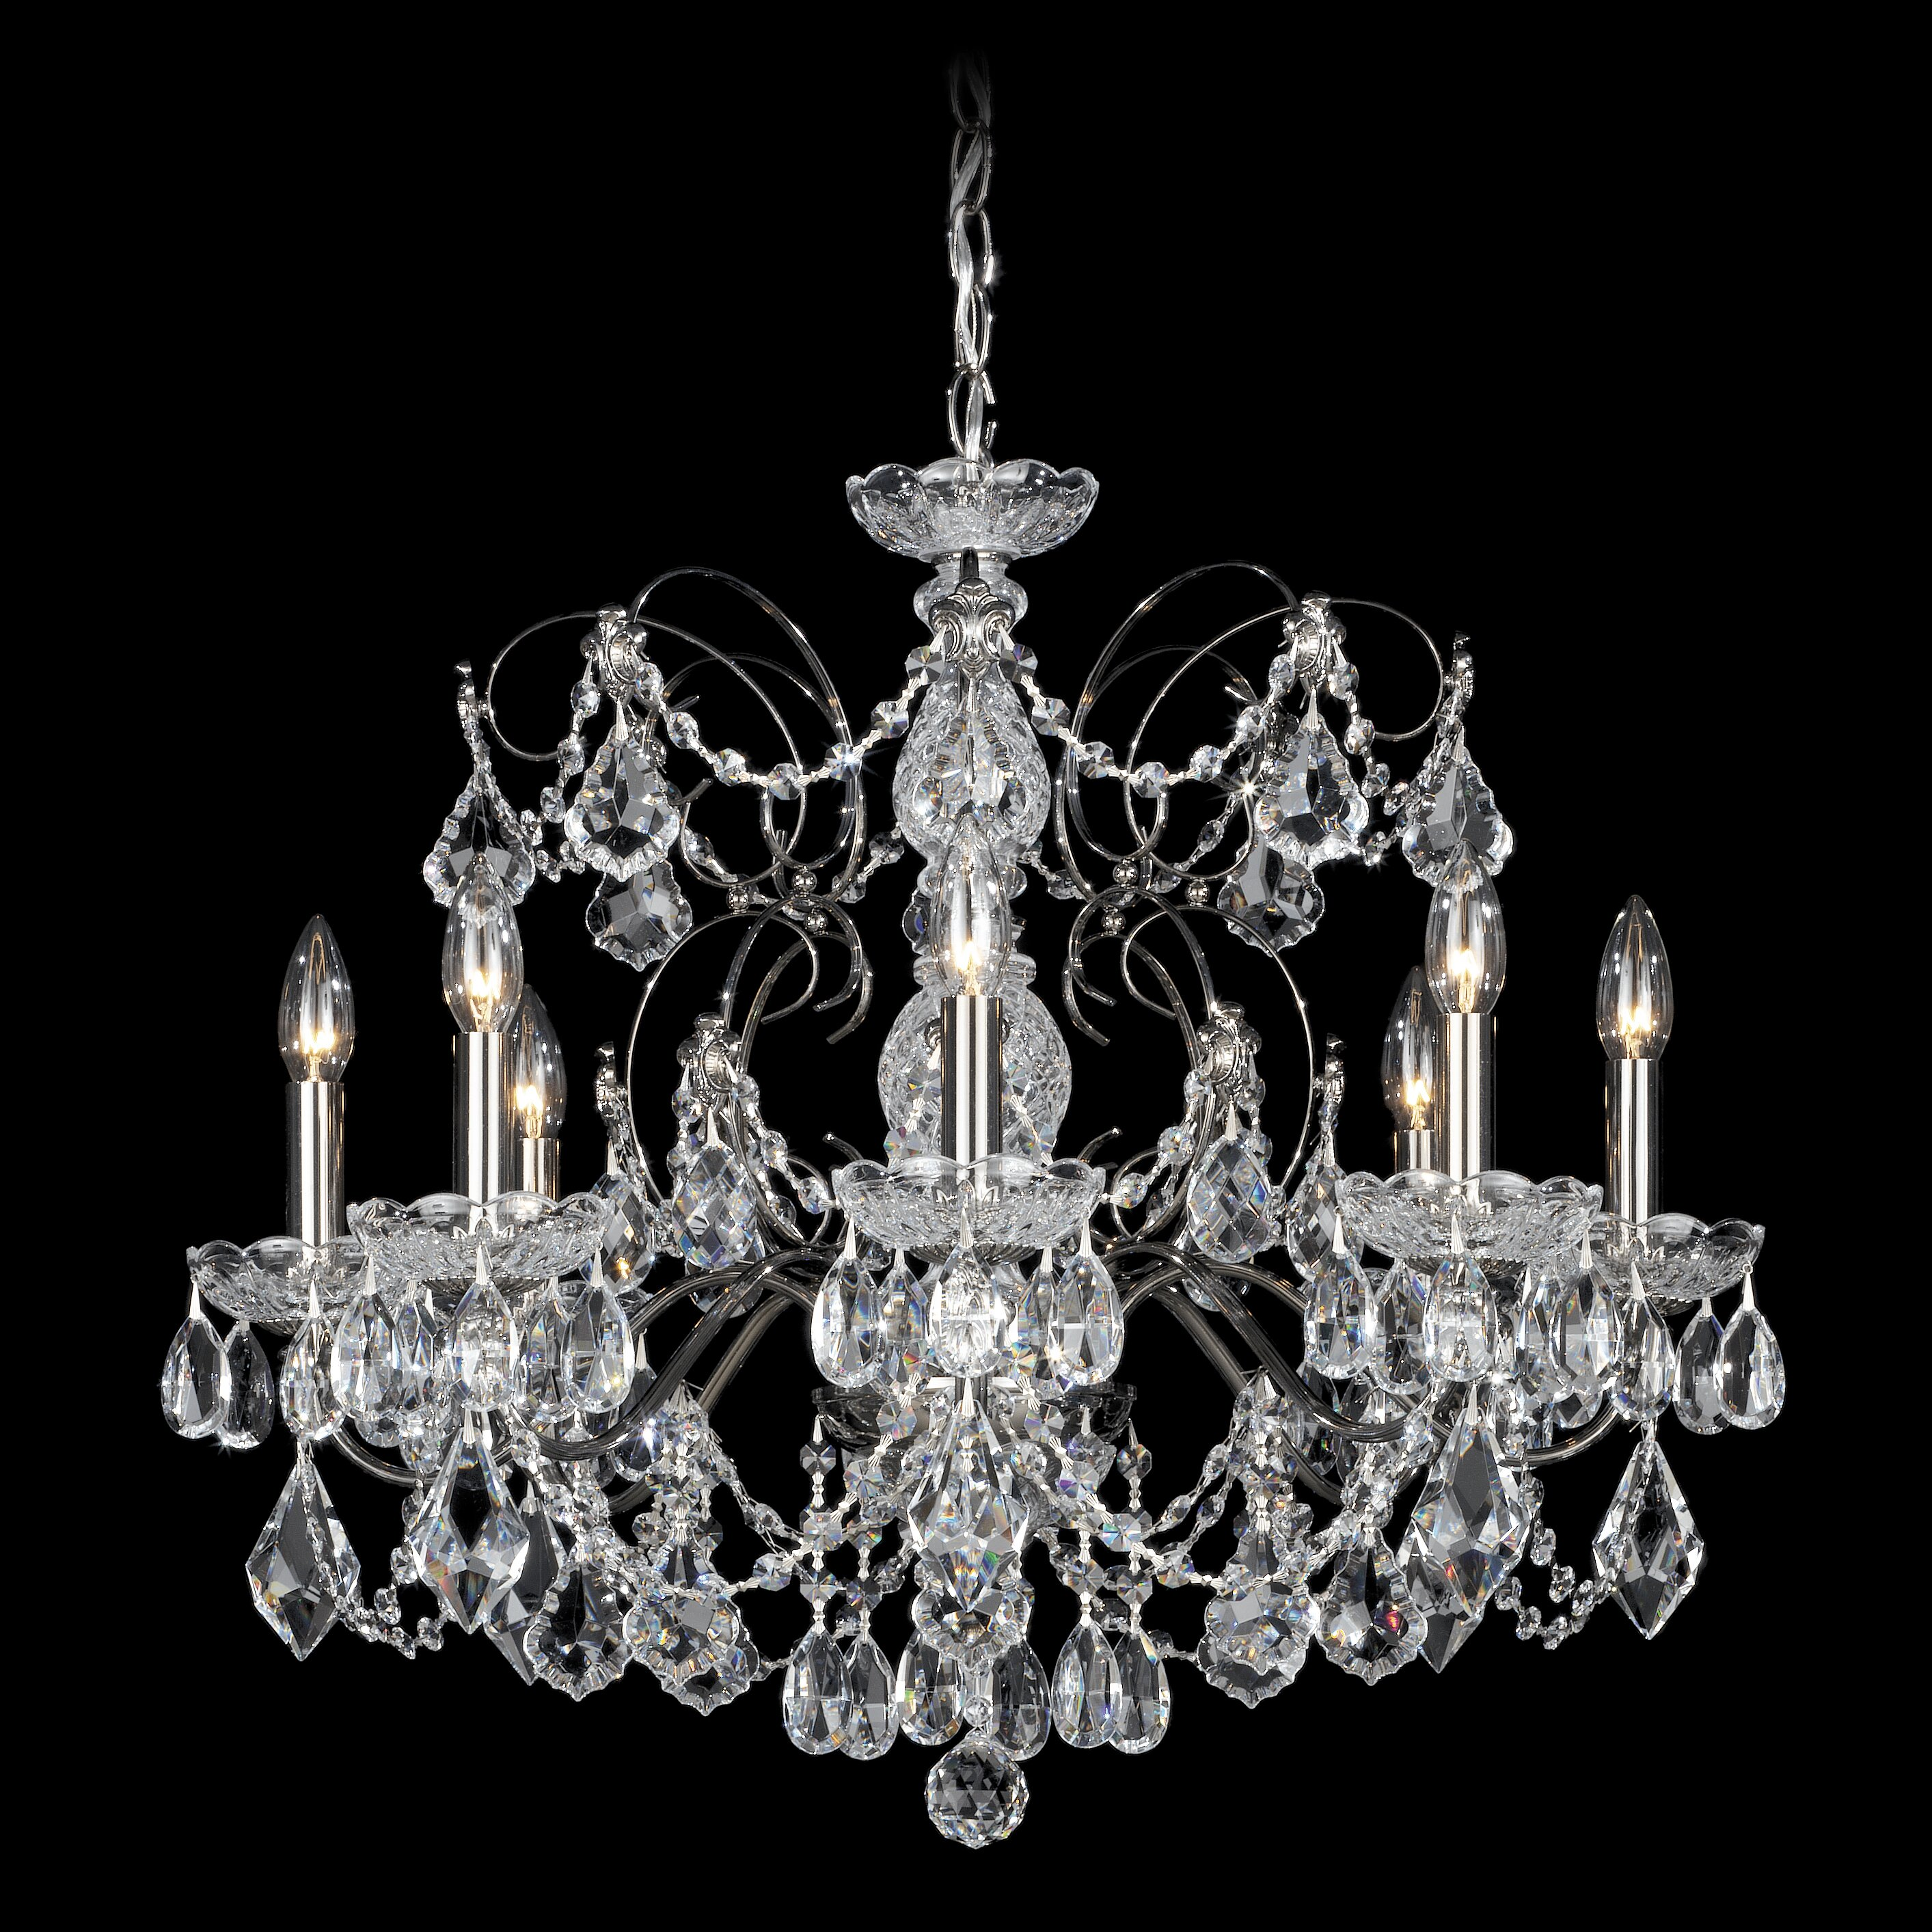 Schonbek century 8 light chandelier reviews wayfair - Lighting and chandeliers ...